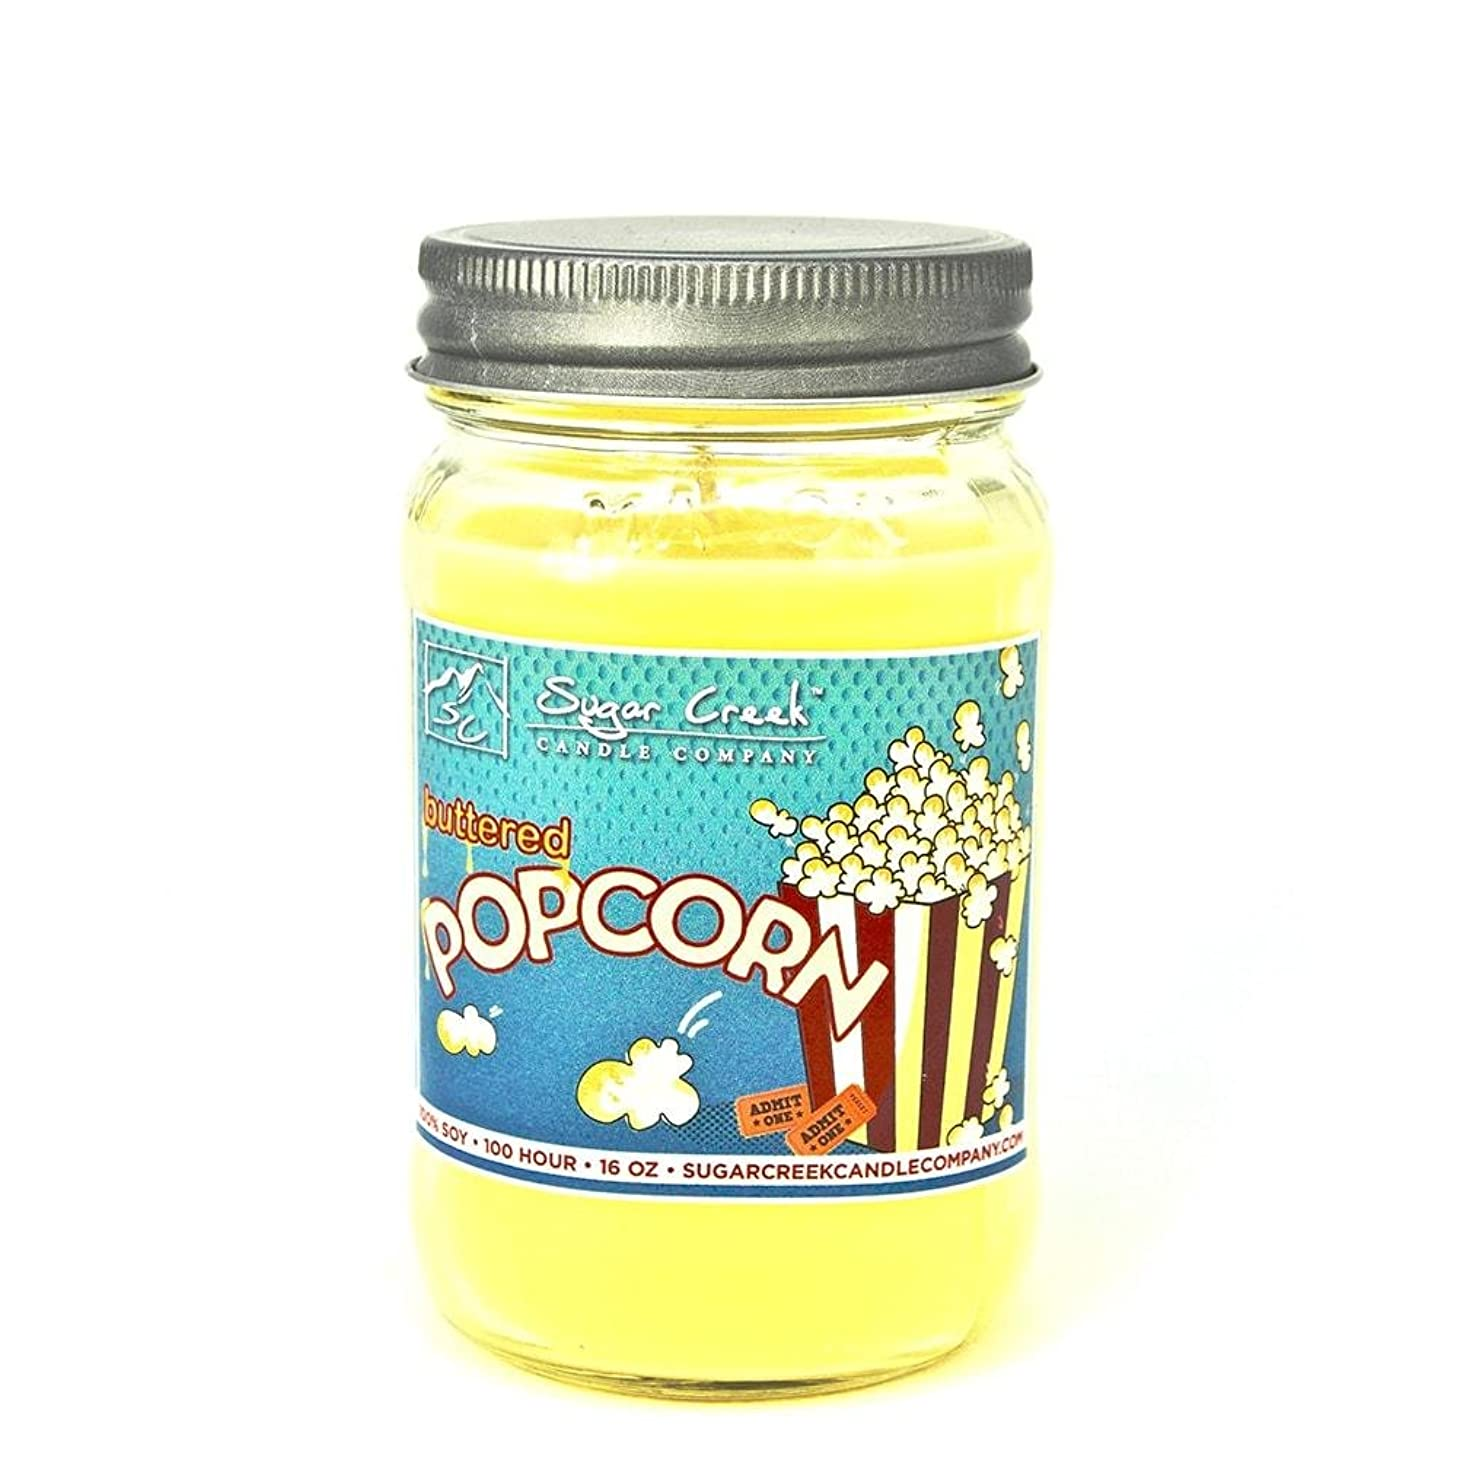 Buttered Popcorn (Movie Theater Style) 100% Soy Wax Candle. Soy Candles Burn Cleaner ~ Longer ~ Non-Toxic ~ The Original 100% Yinzer Made in USA. Gift for Any Occasion - Sugar Creek Ca fncpbfhbh